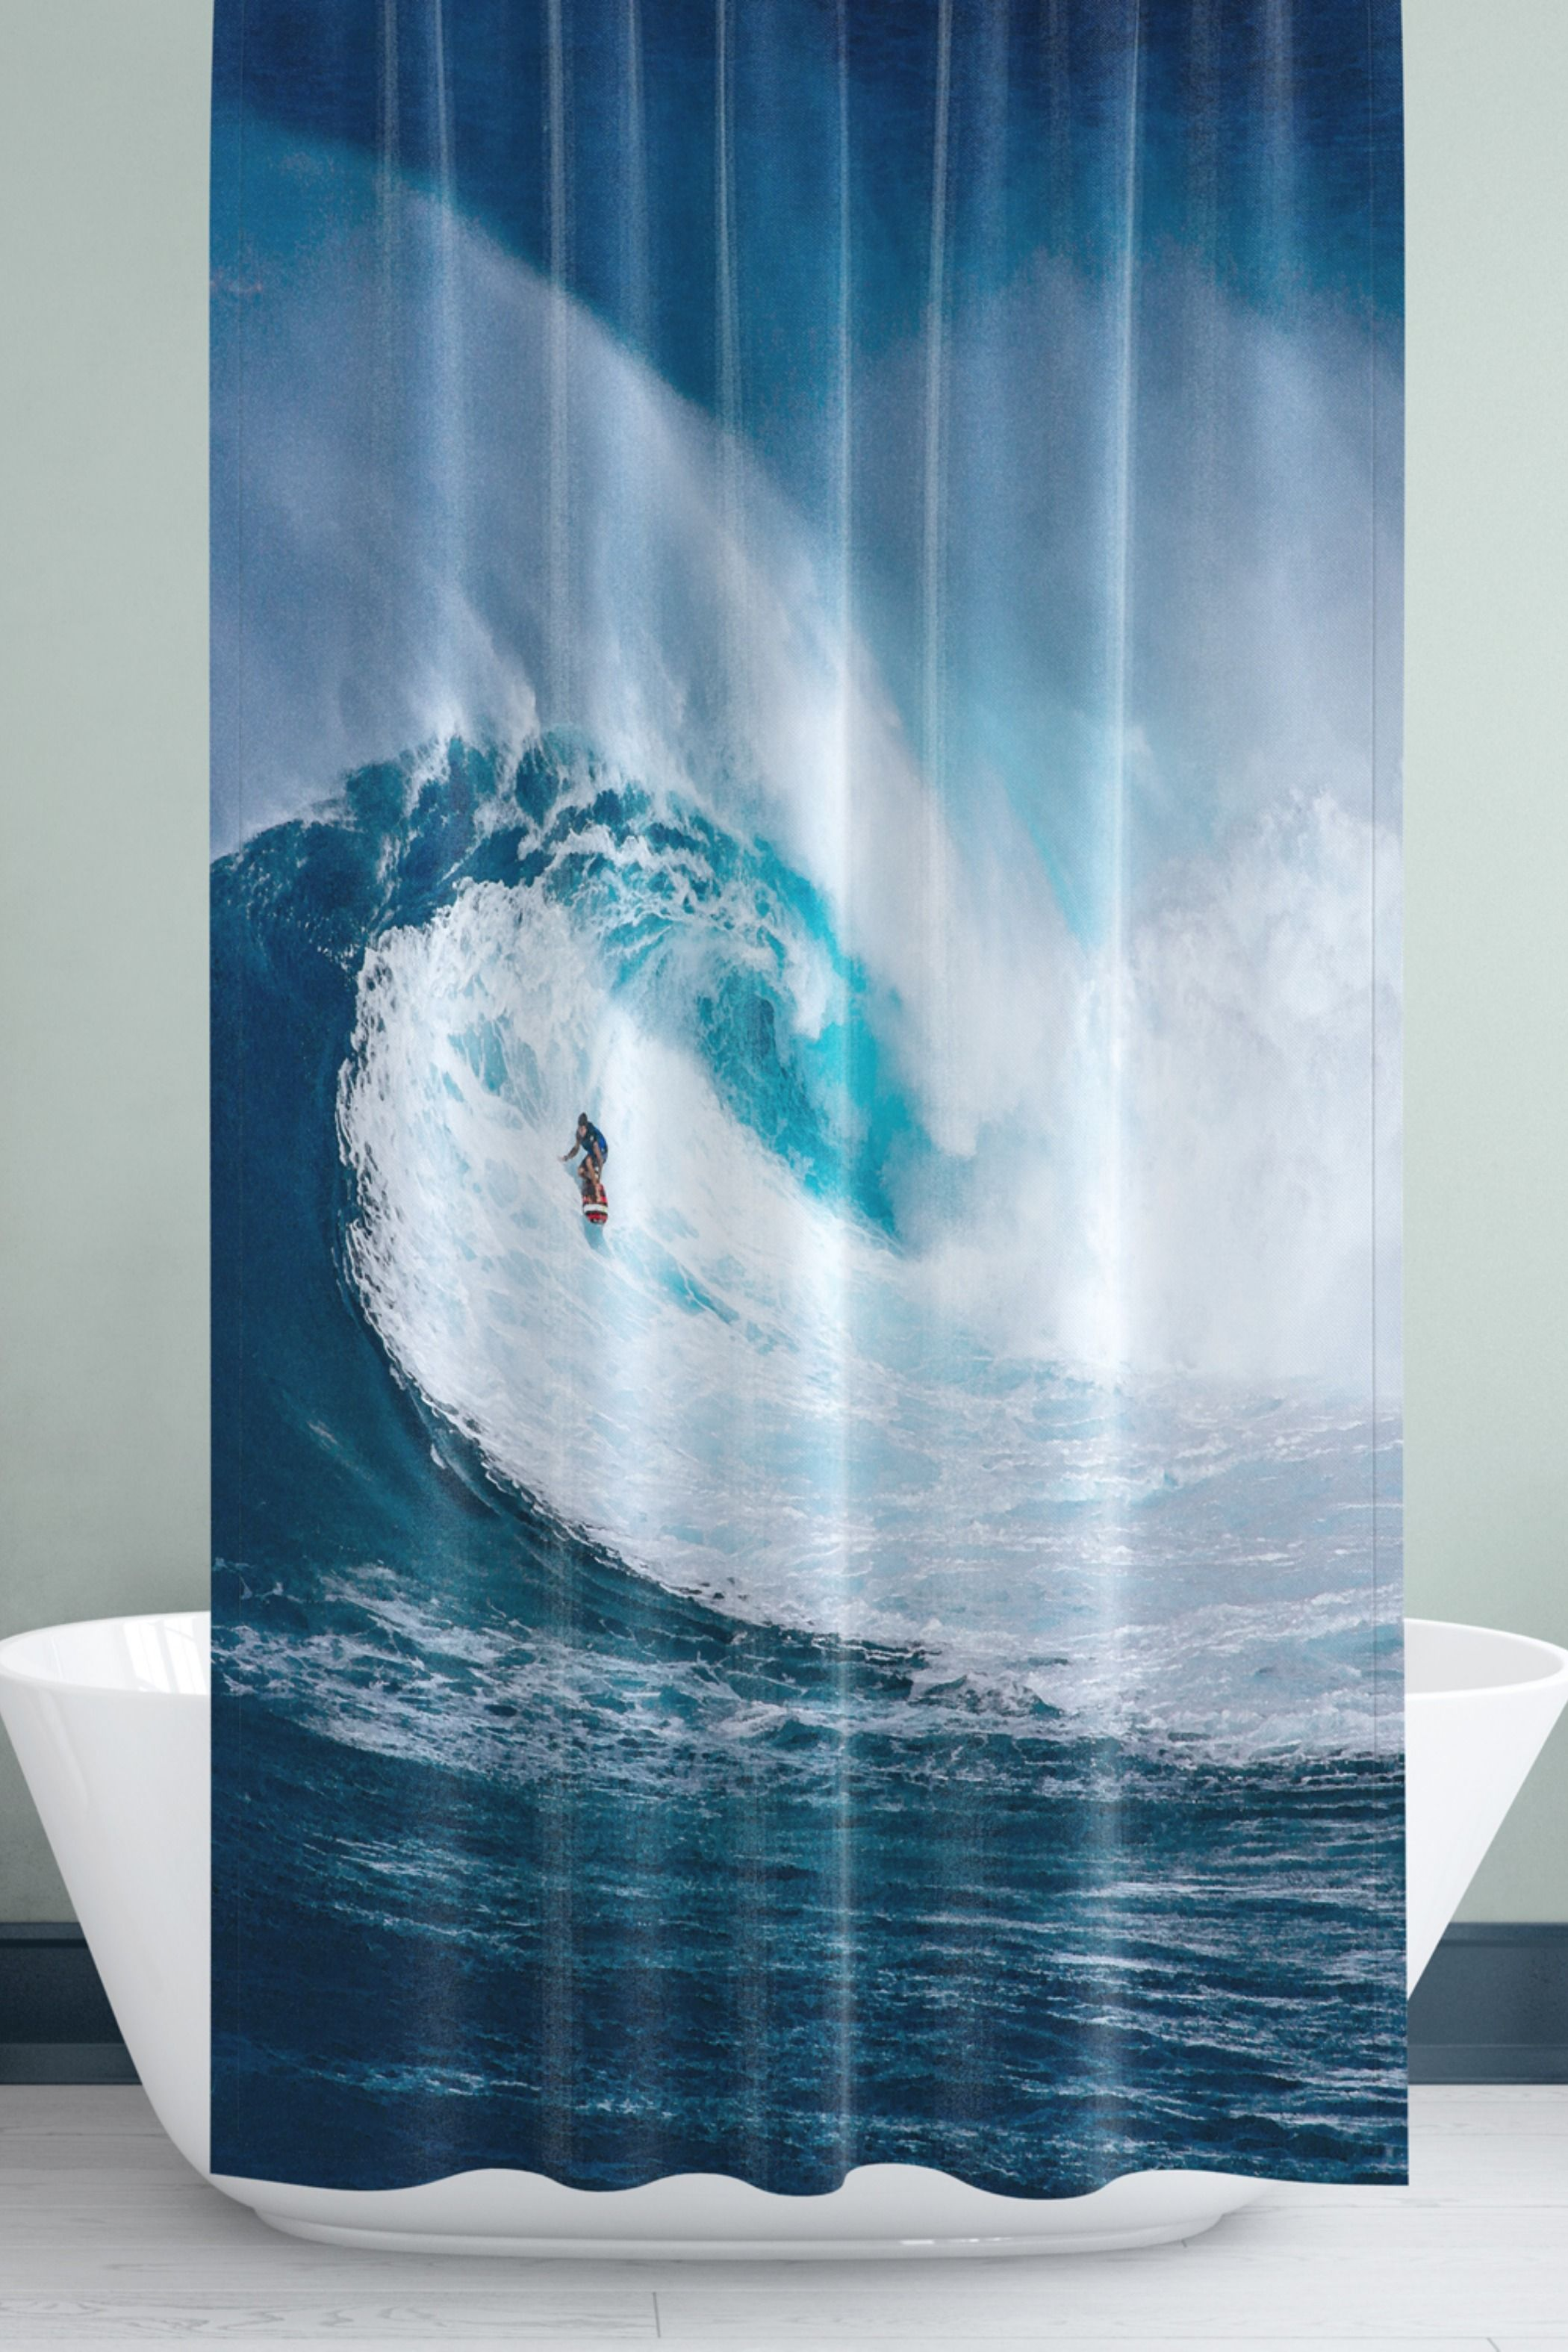 Surfing Shower Curtain Etsy Surfer Decor Curtains Brown